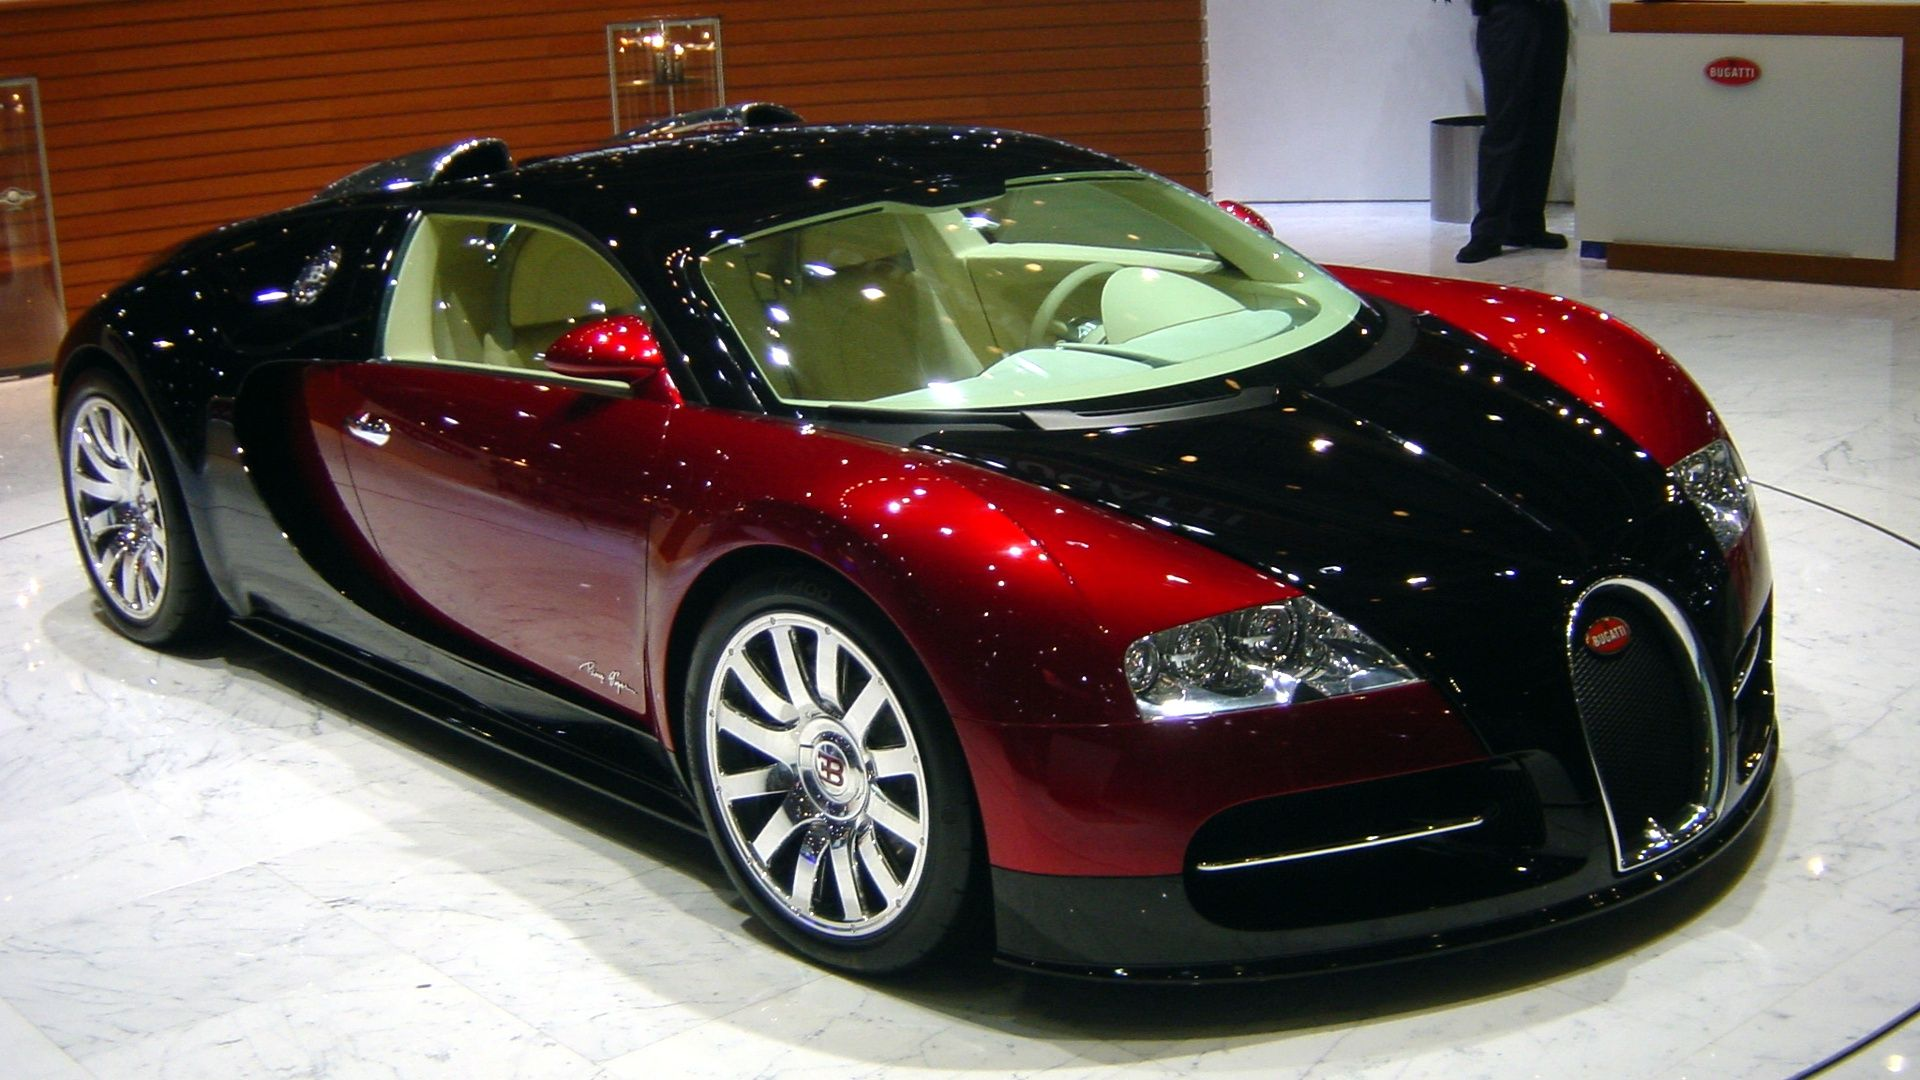 Bugatti | HD Wallpapers backgrounds for your desktop. All Bugatti cars .